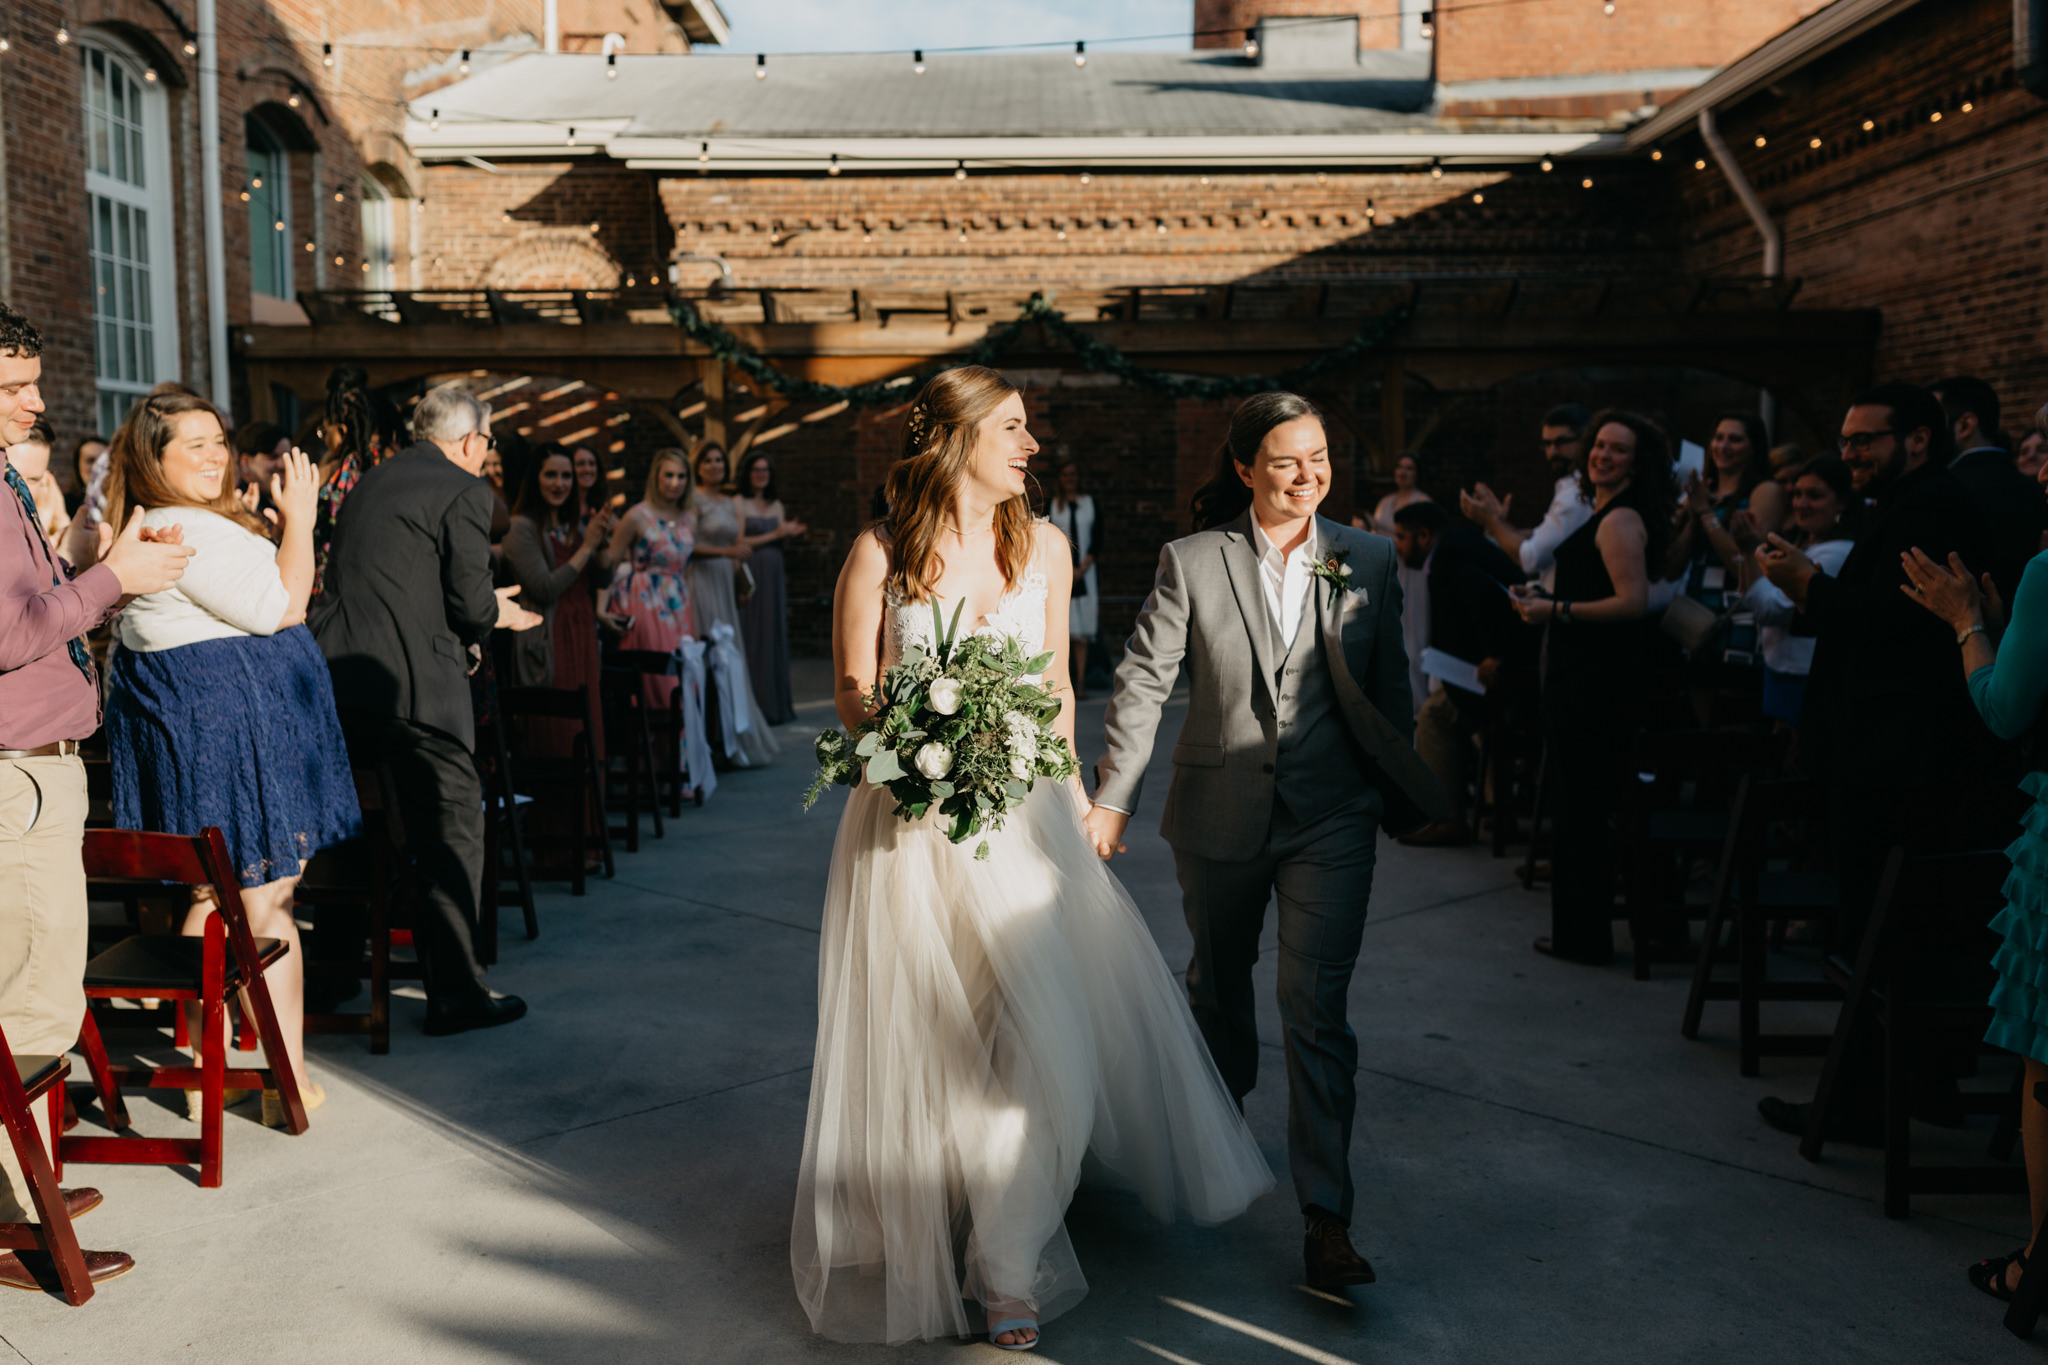 Newly married couple joyously walks out of their wedding ceremony.